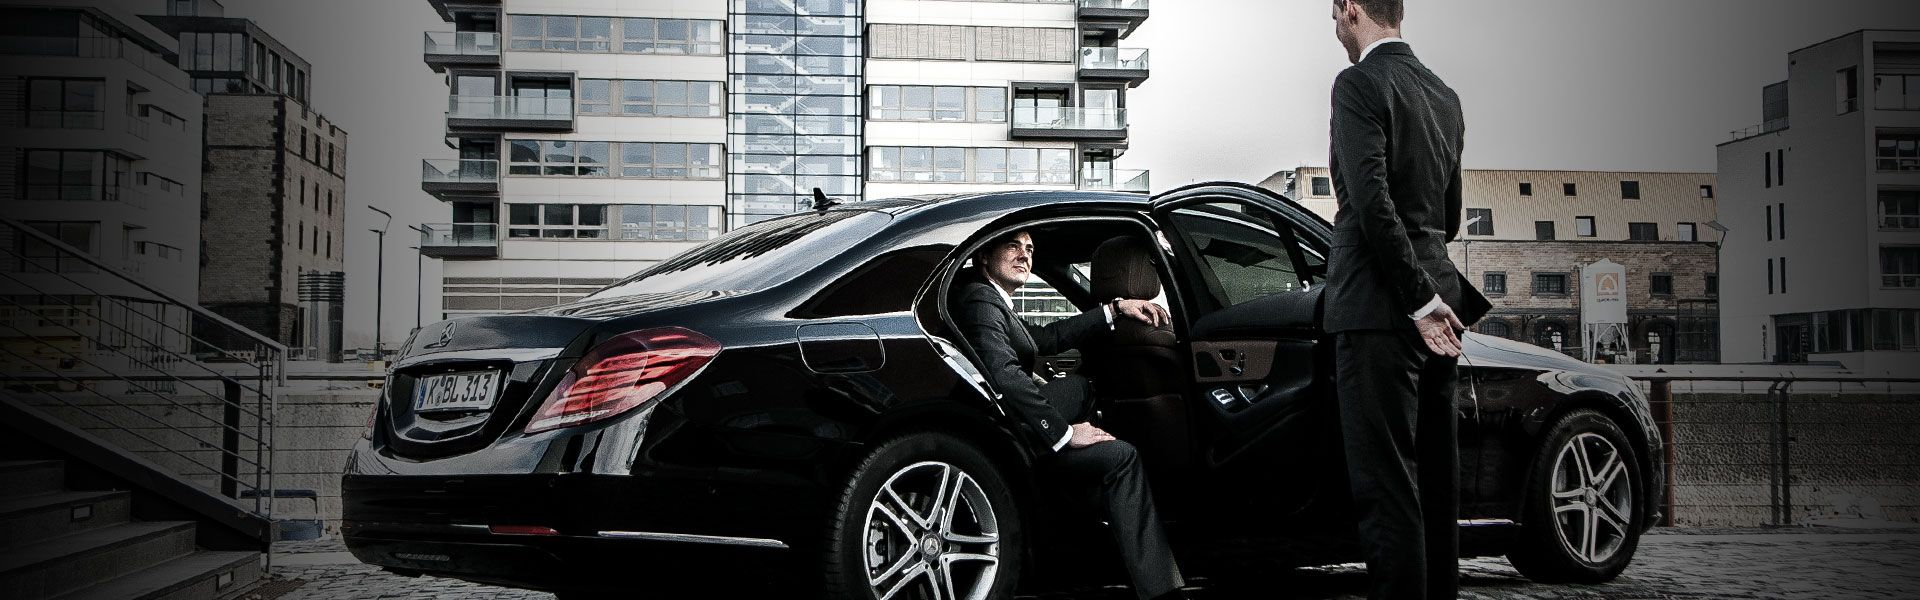 Enjoy Reliable Worry Free Travel By Reserving A Personal Chauffeur When You Rent A Vehicle In Popular De Town Car Service Black Car Service Chauffeur Service